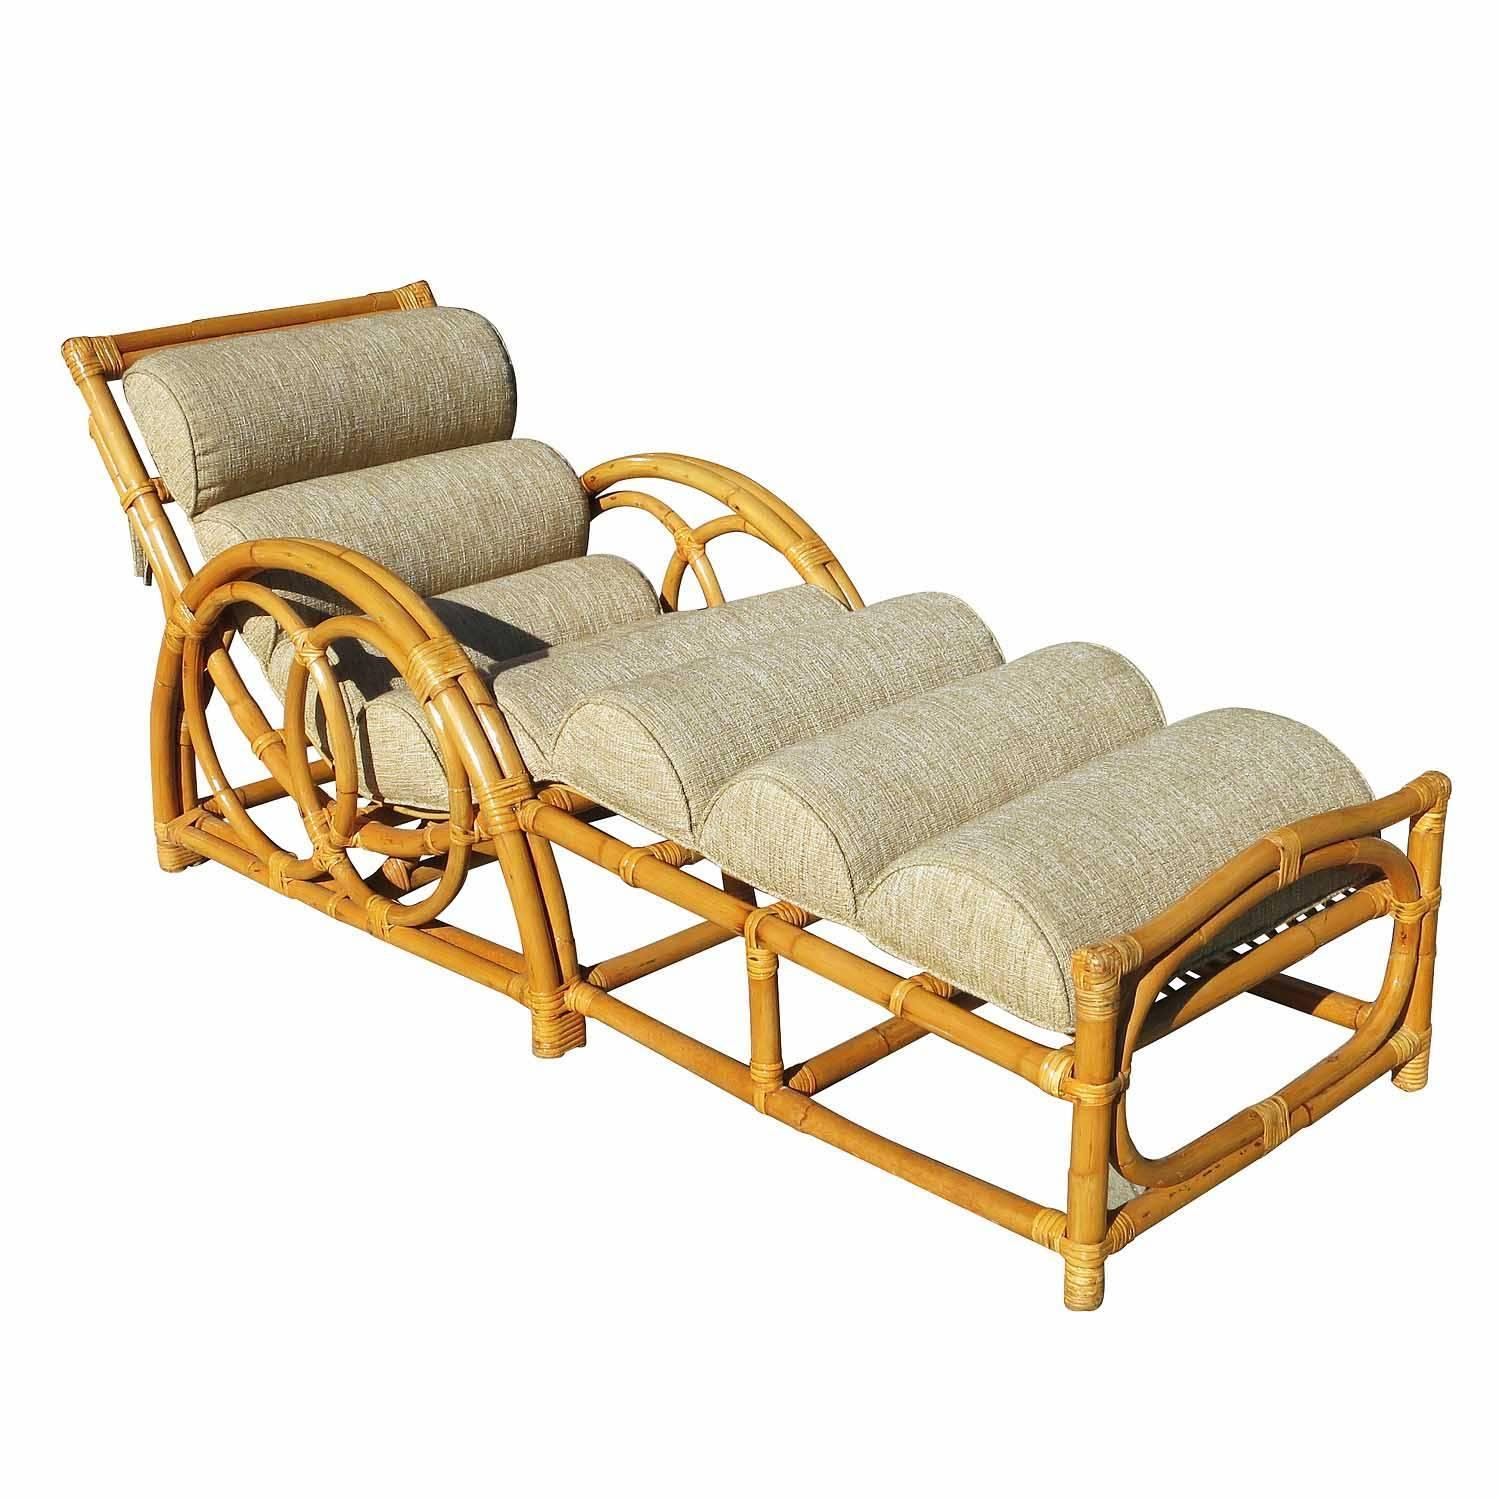 Attractive Half Moon Rattan Chaise Longue Chair | Modernism SU78